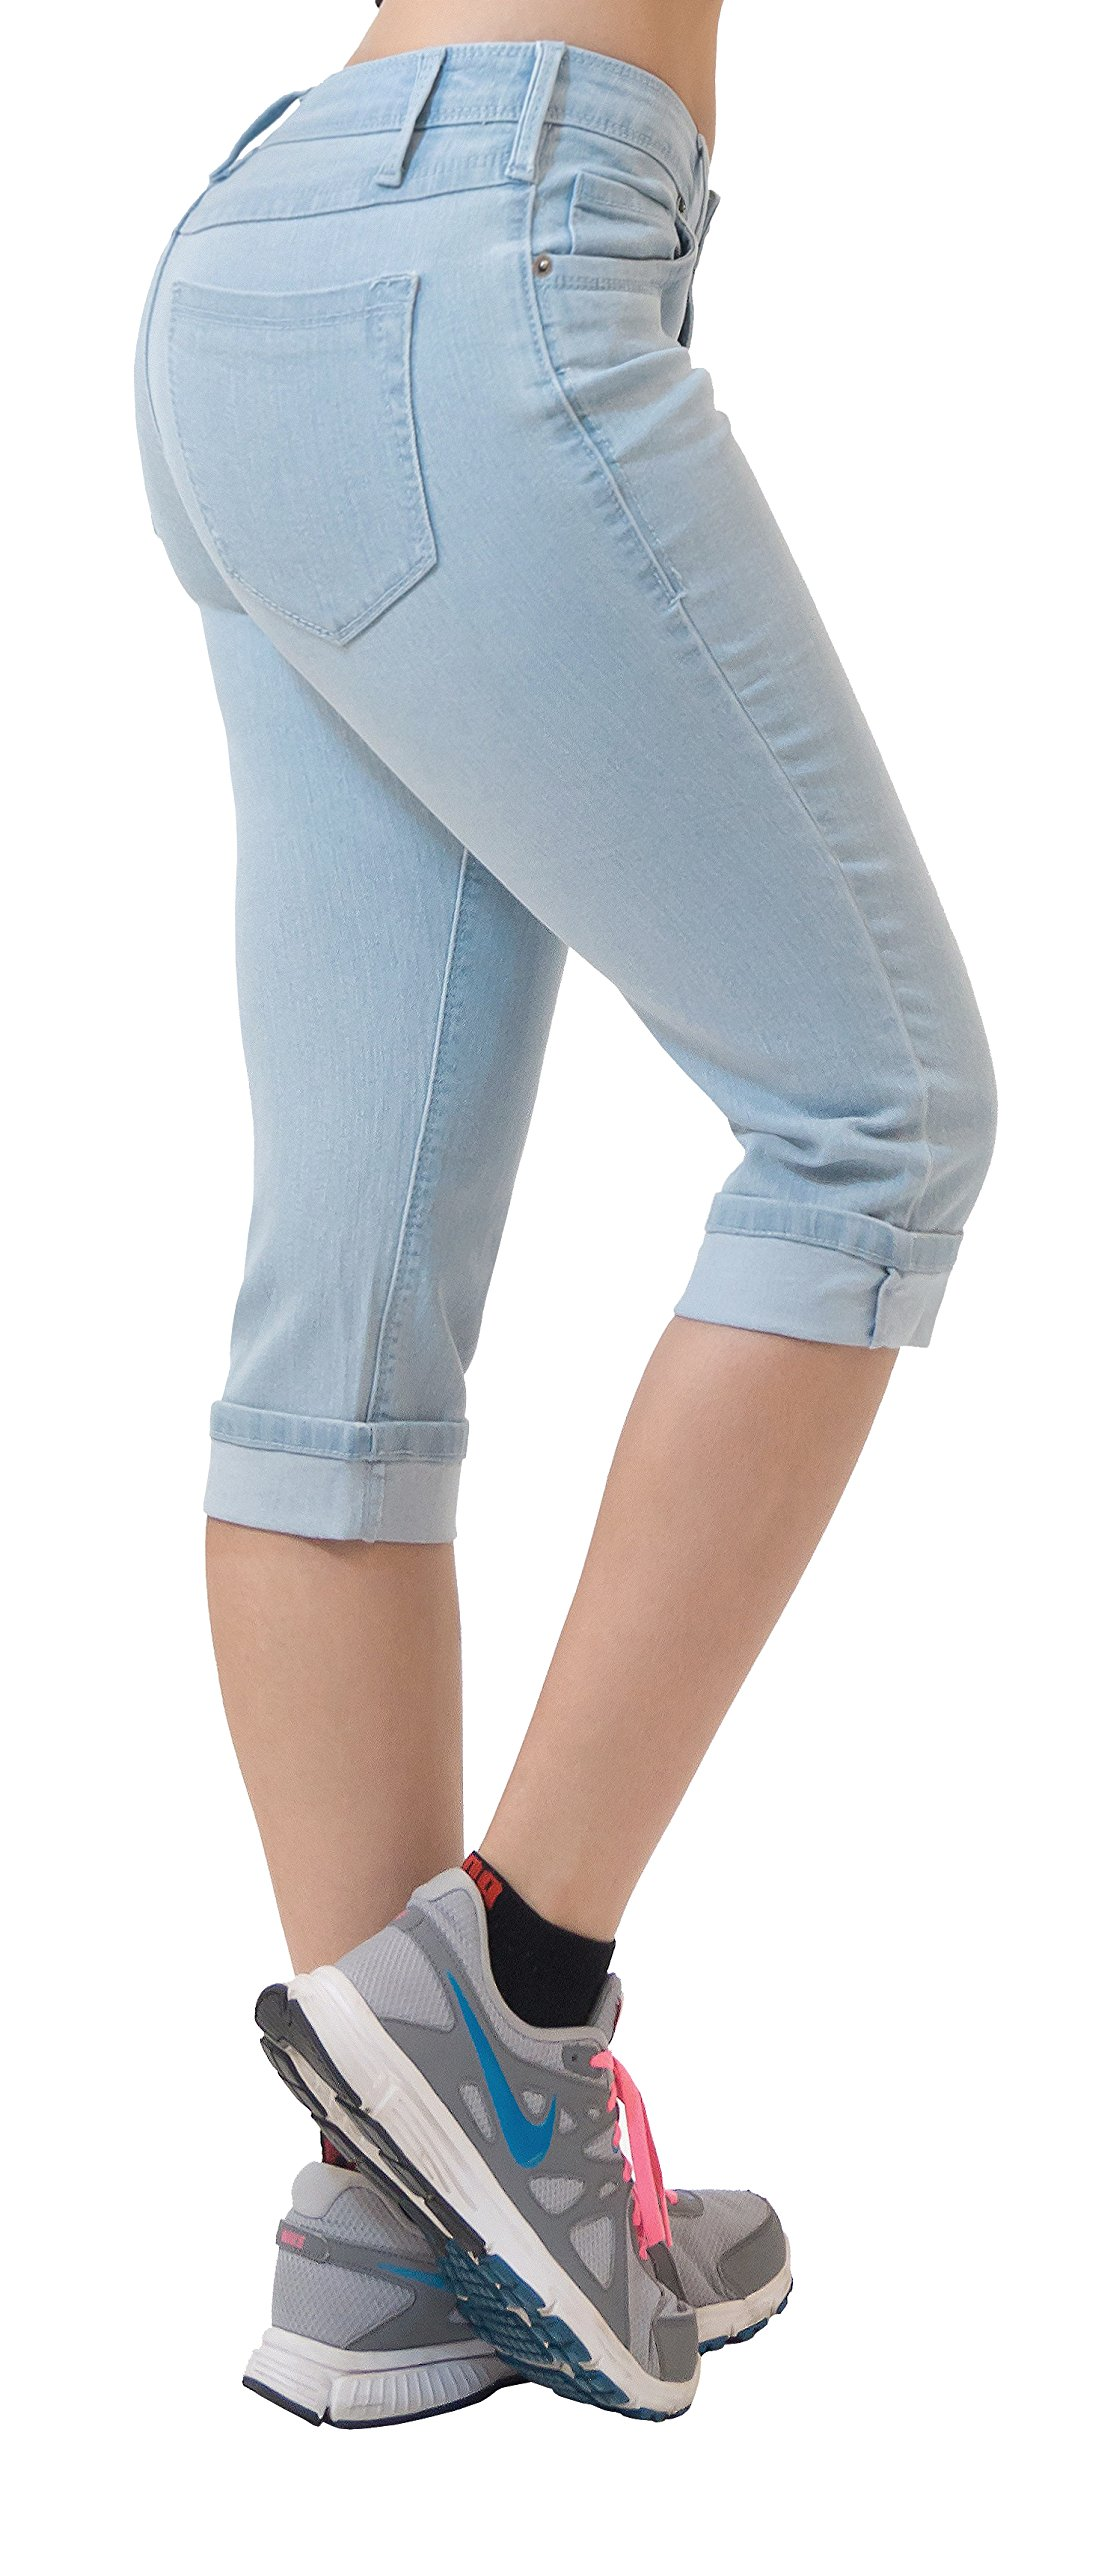 HyBrid & Company Women's Perfectly Shaping Stretchy Denim Capri-Q22883X-LightWash-18 by HyBrid & Company (Image #1)